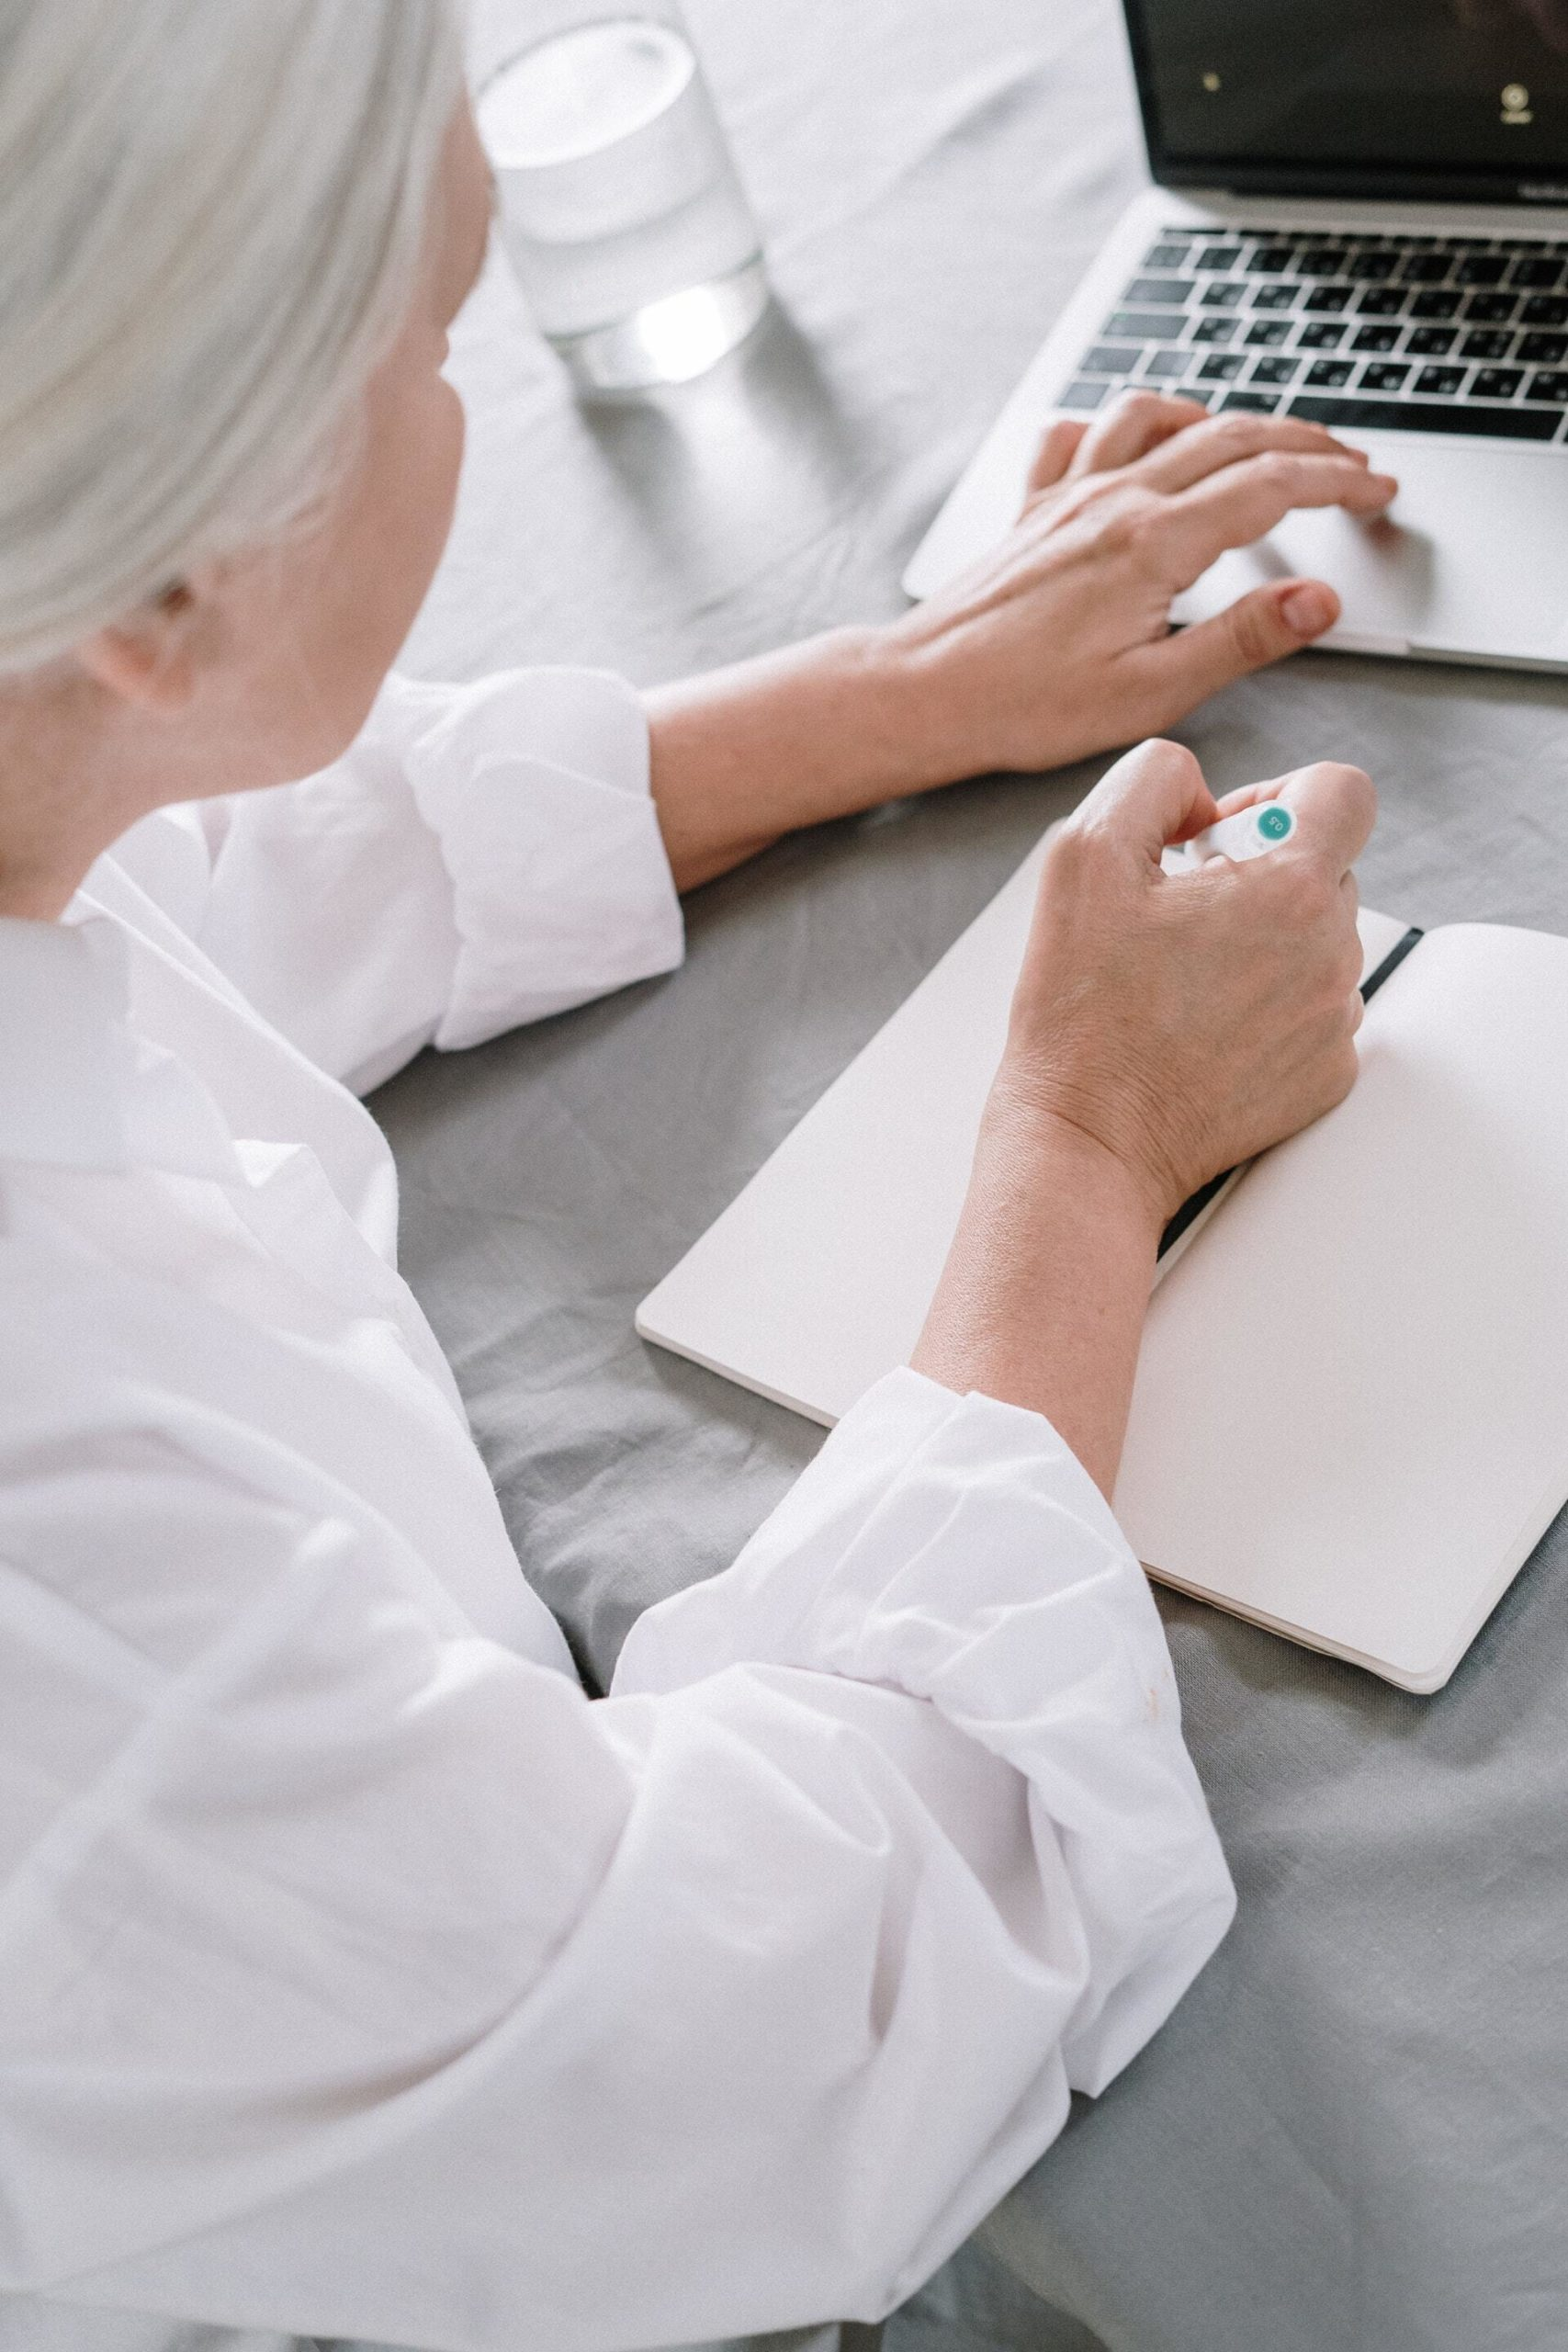 an-elderly-woman-taking-notes-while-using-a-laptop-4057764